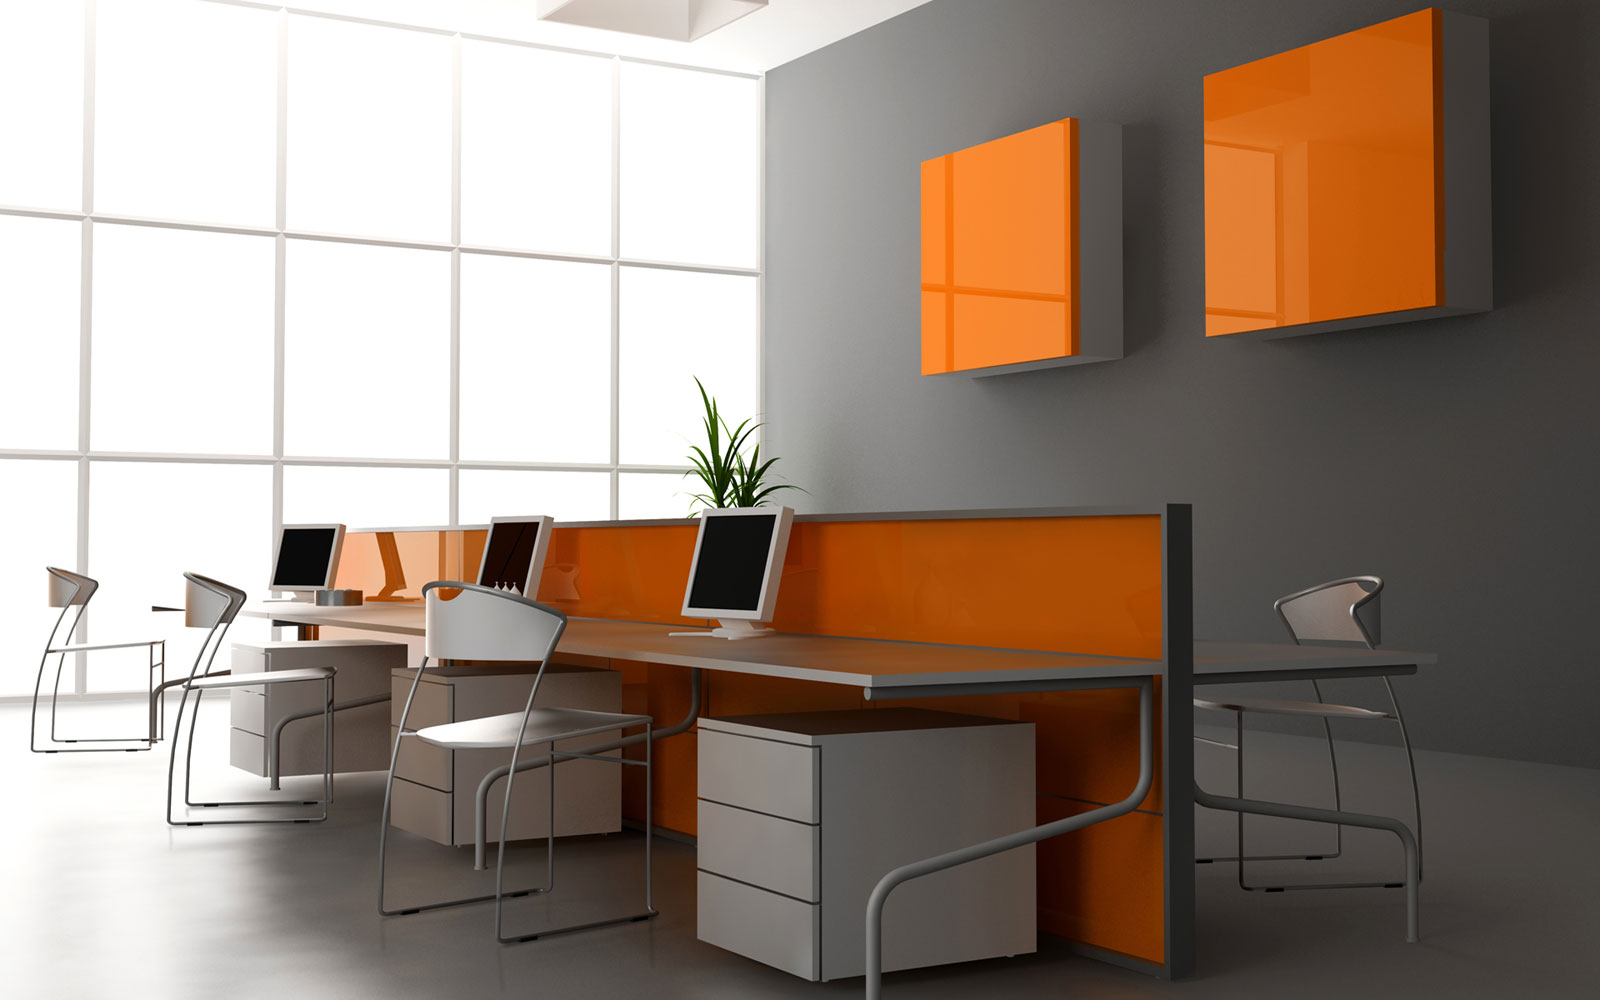 arcsens-orange-interior-design